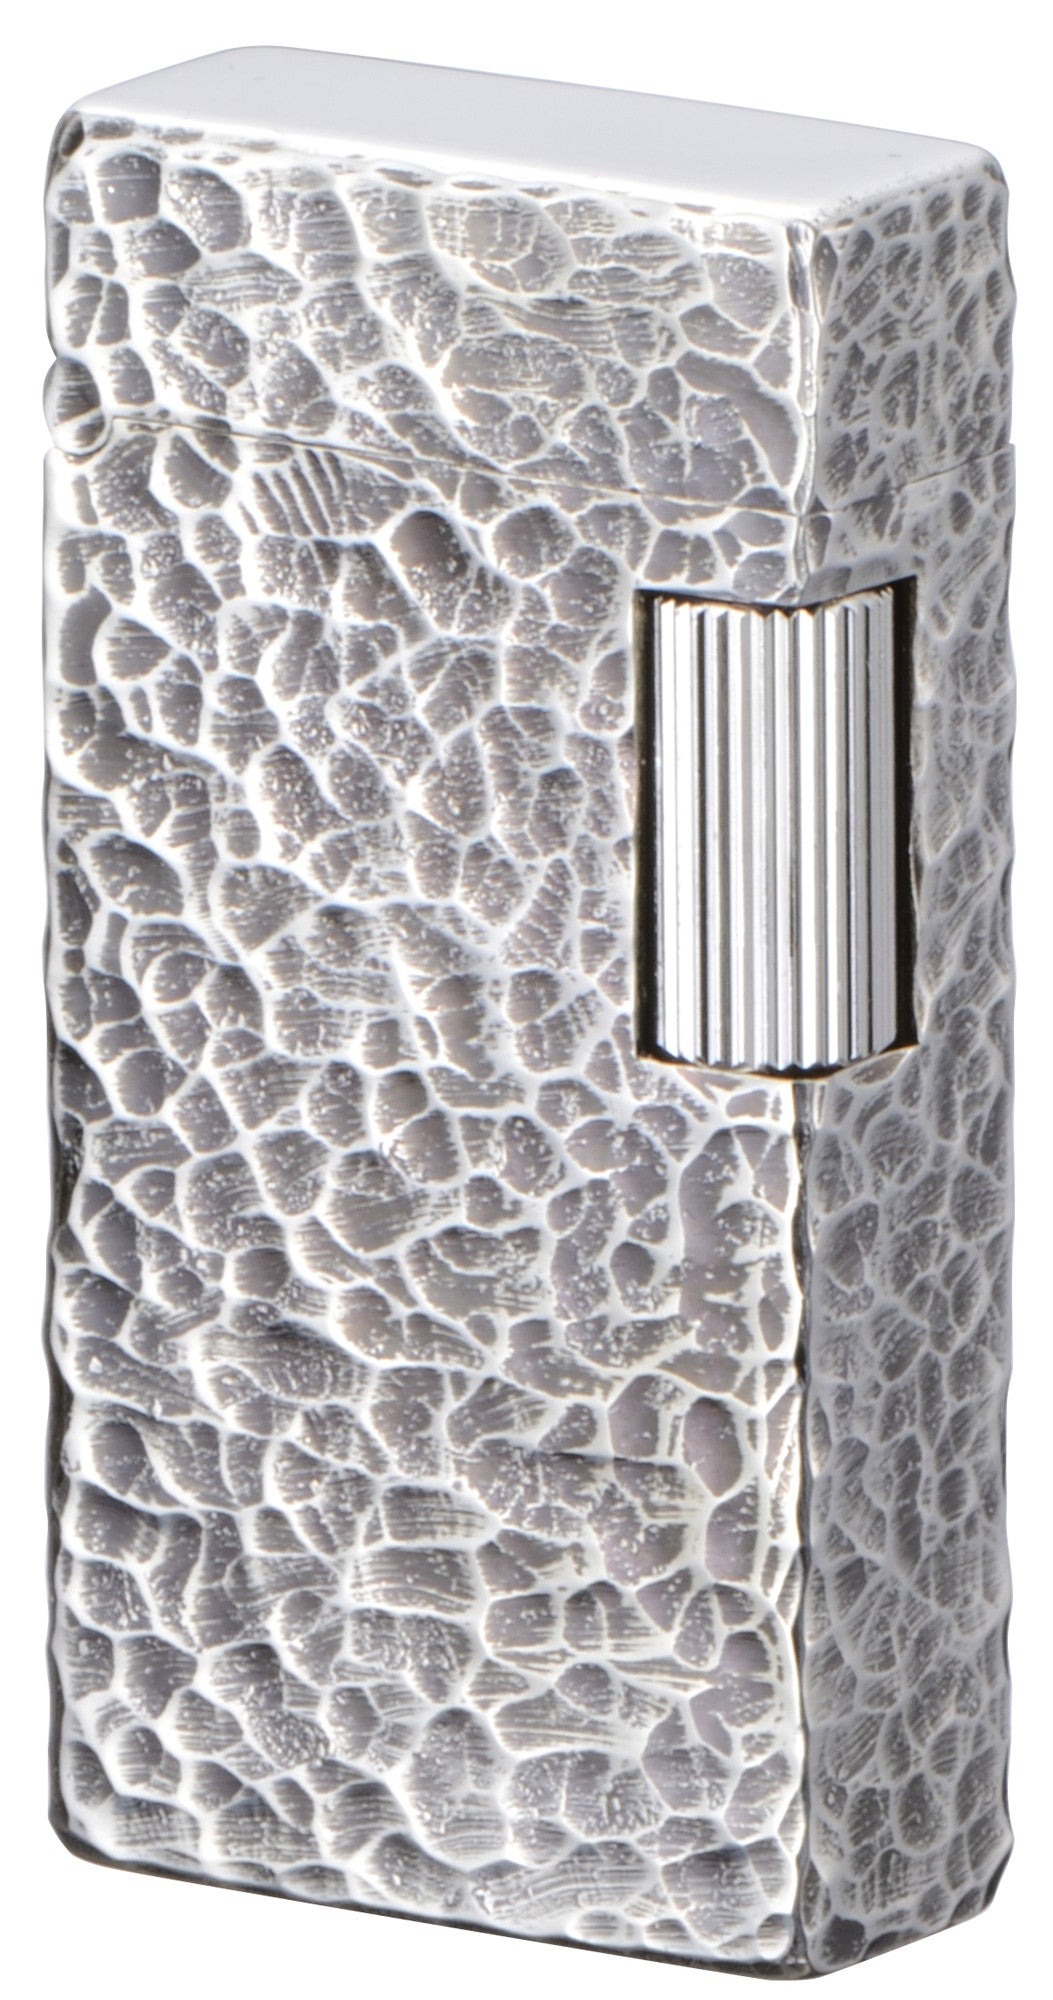 Sarome Flint Cigarette Lighter Antique Silver / 4-side hummer tone SD1-57